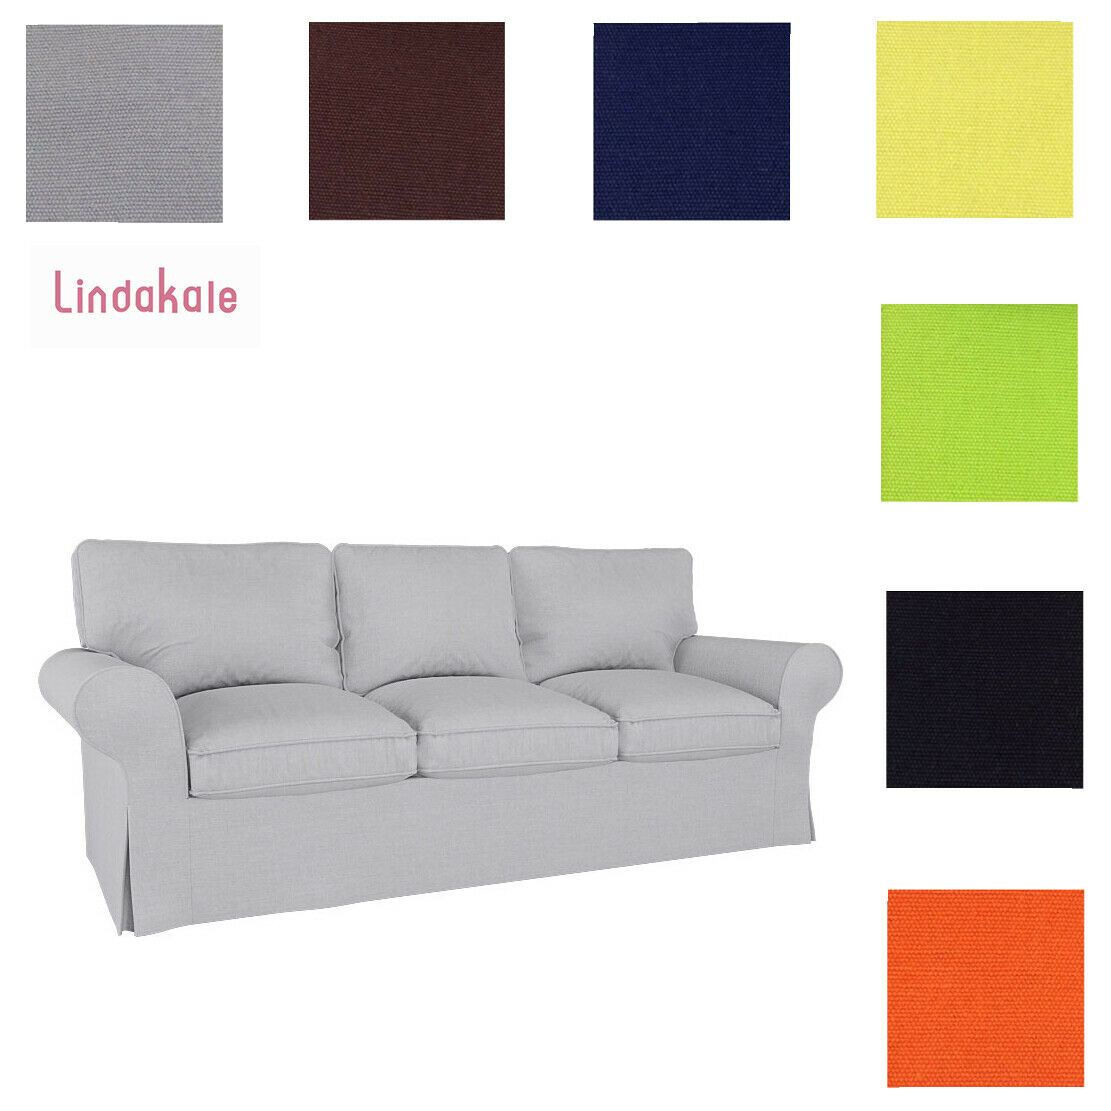 Picture of: Custom Made Cover Fits Ikea Ektorp Sofa Ektorp 3 Seat Sofa Cover Ektorp Cover Ebay